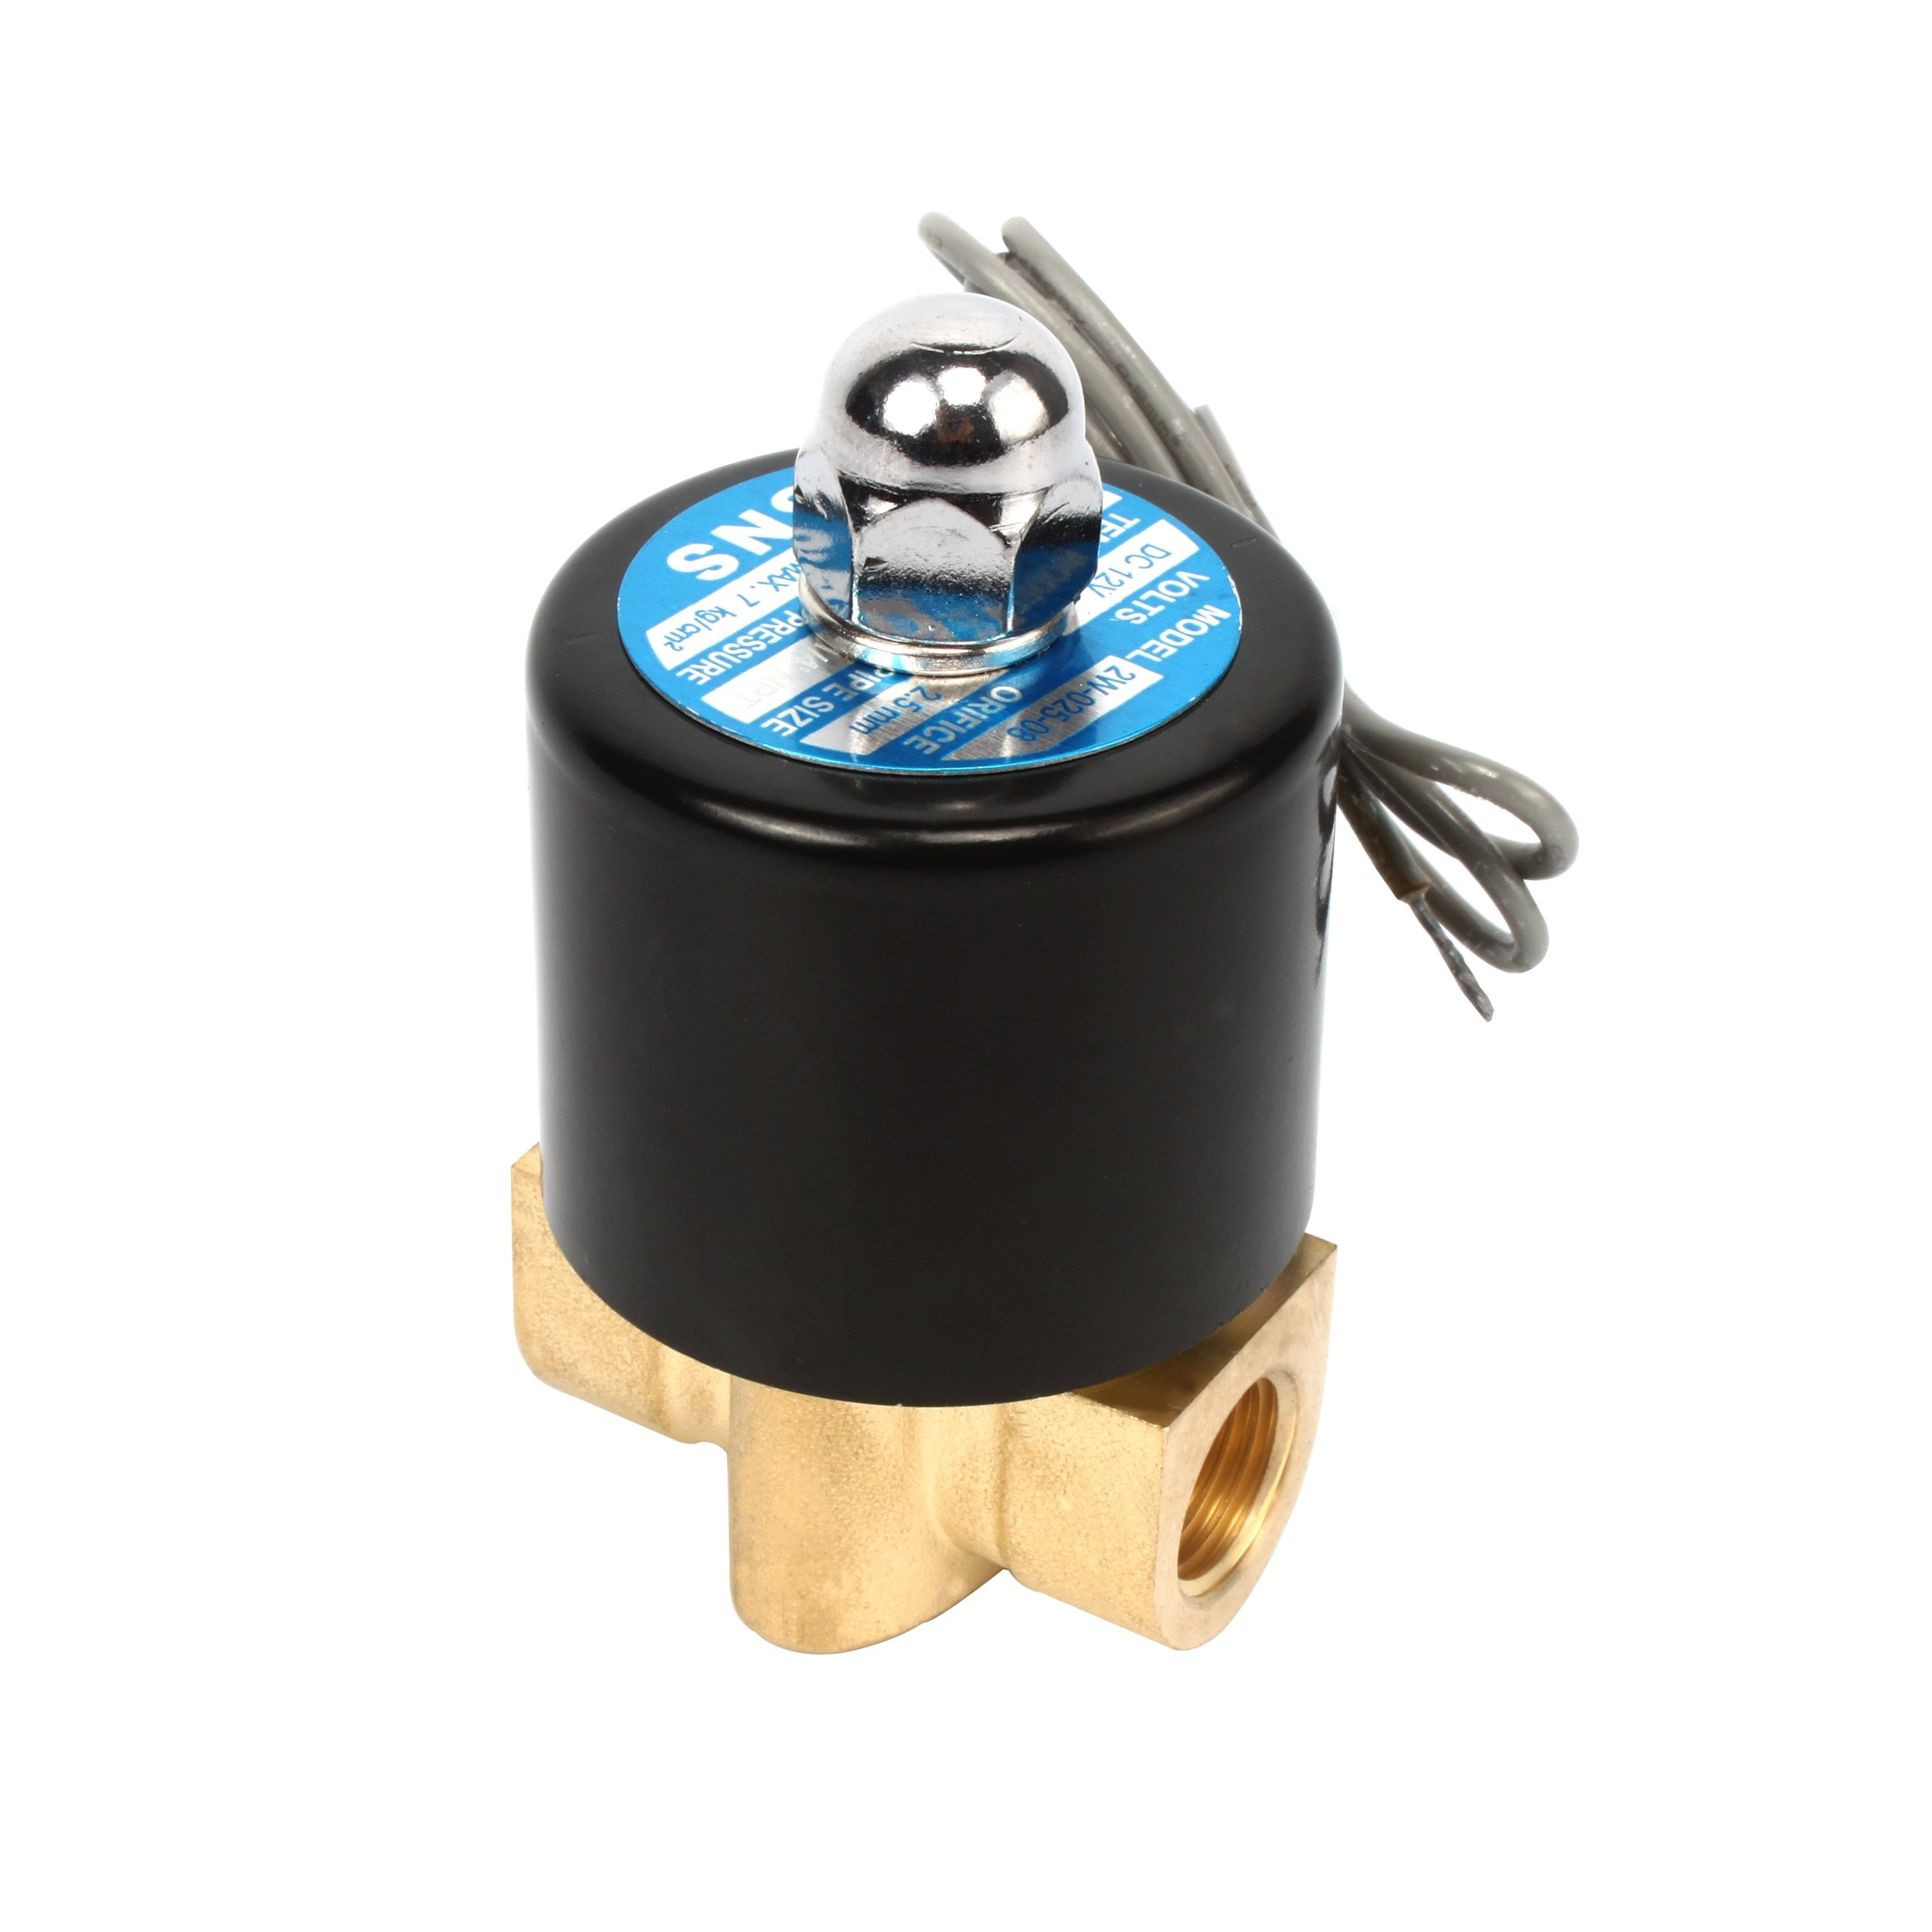 SNS 2W025-08 1/4'' DC12V NPT Brass Electric Solenoid Valve Normally Closed Water, Air, Diesel by SNS (Image #2)